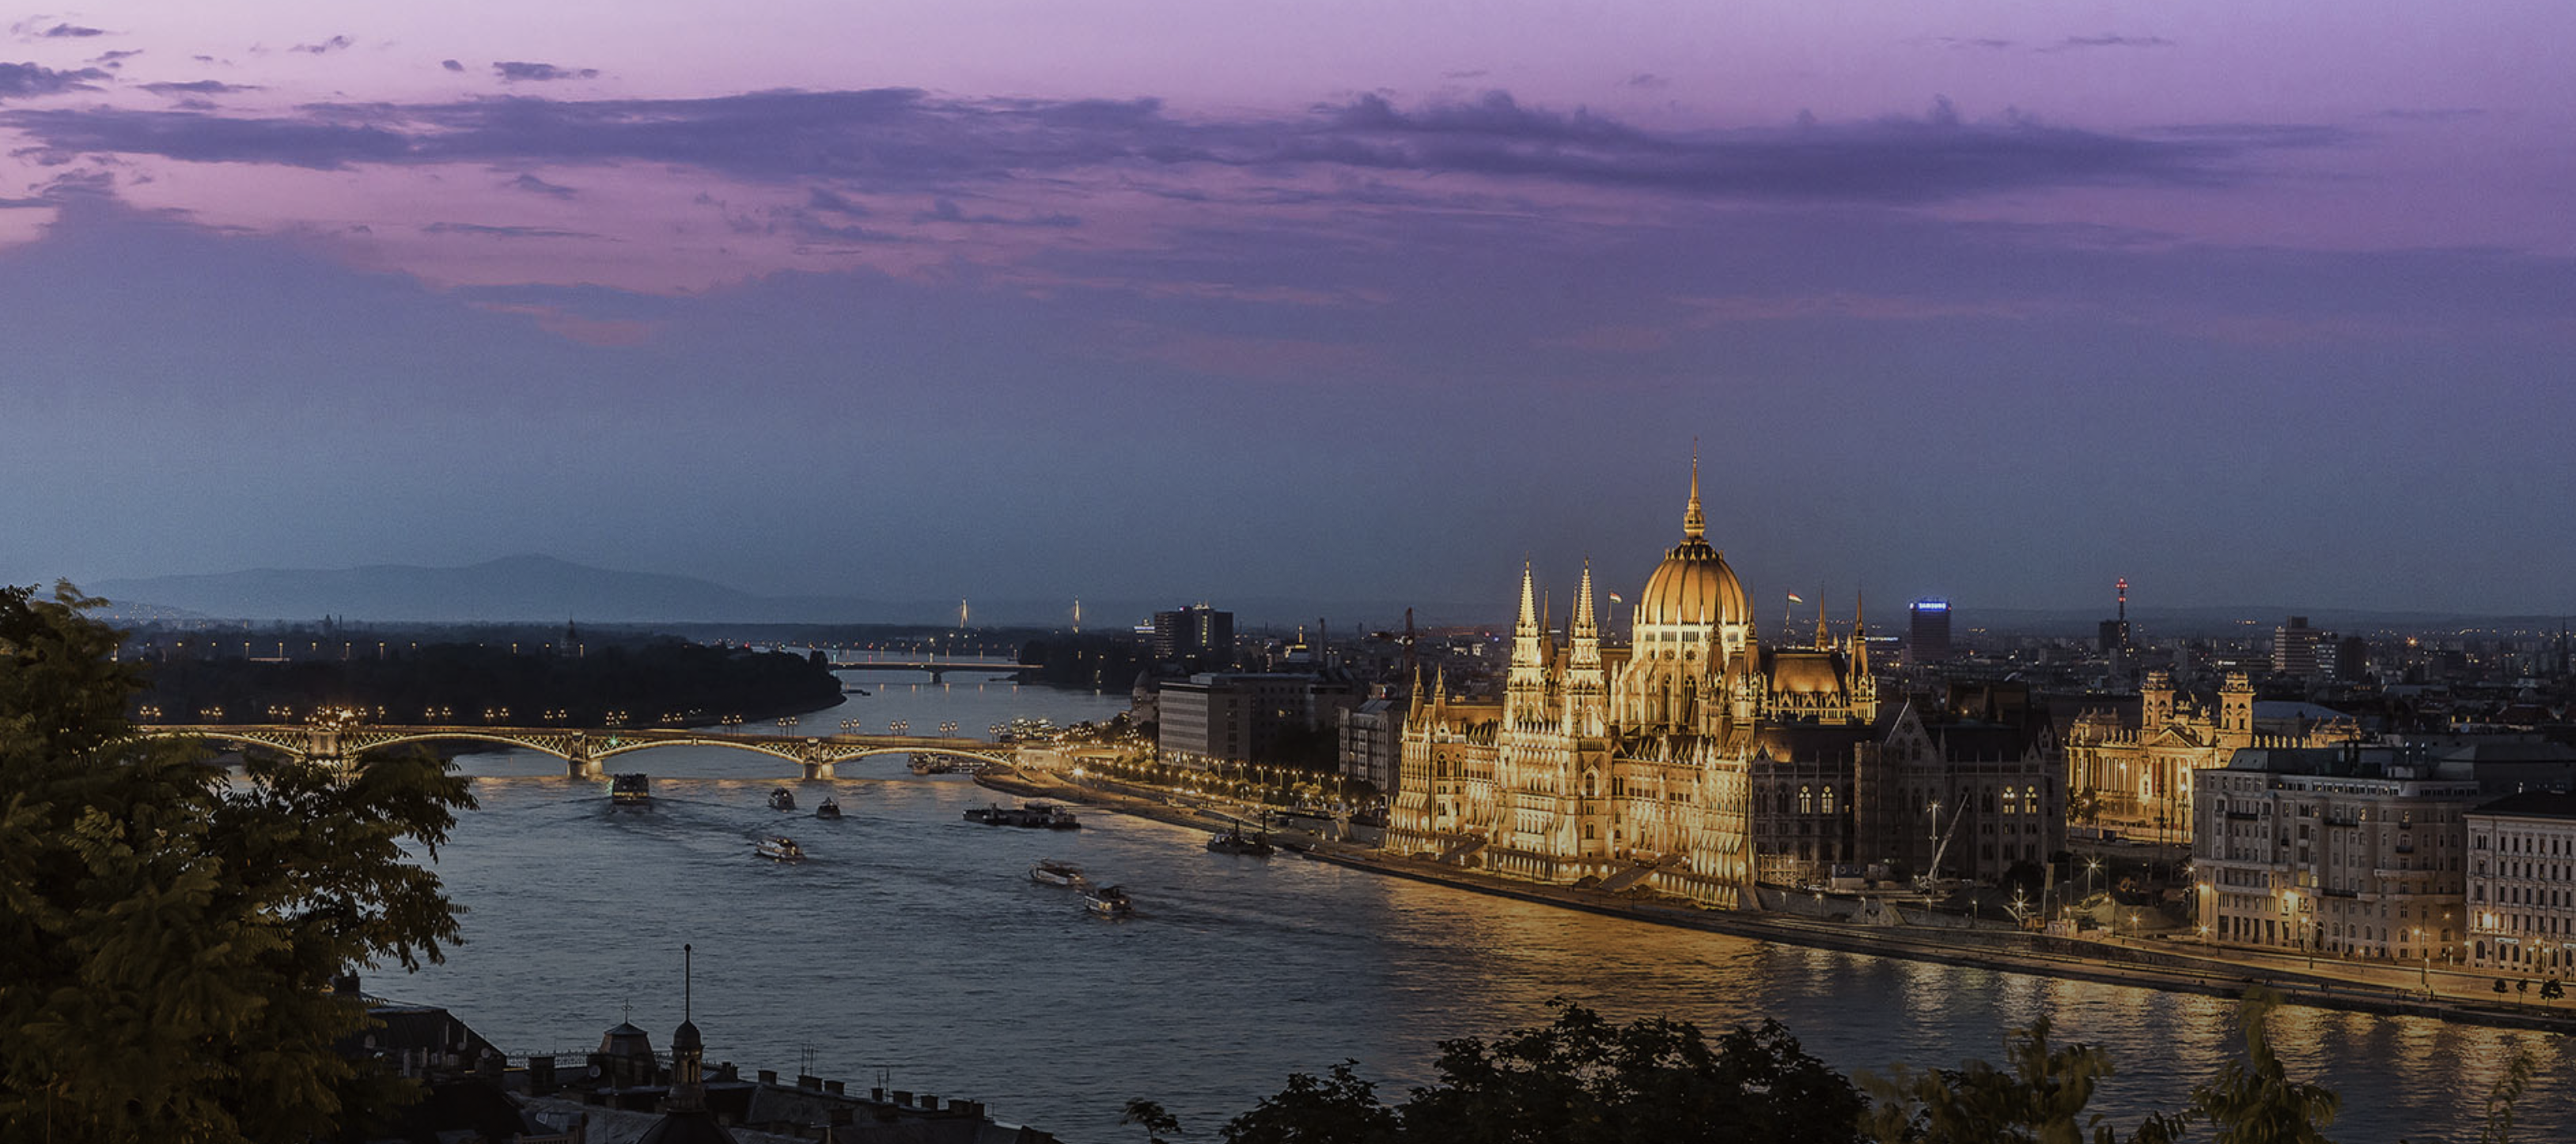 Danube River Cruise with FREE Roundtrip Air